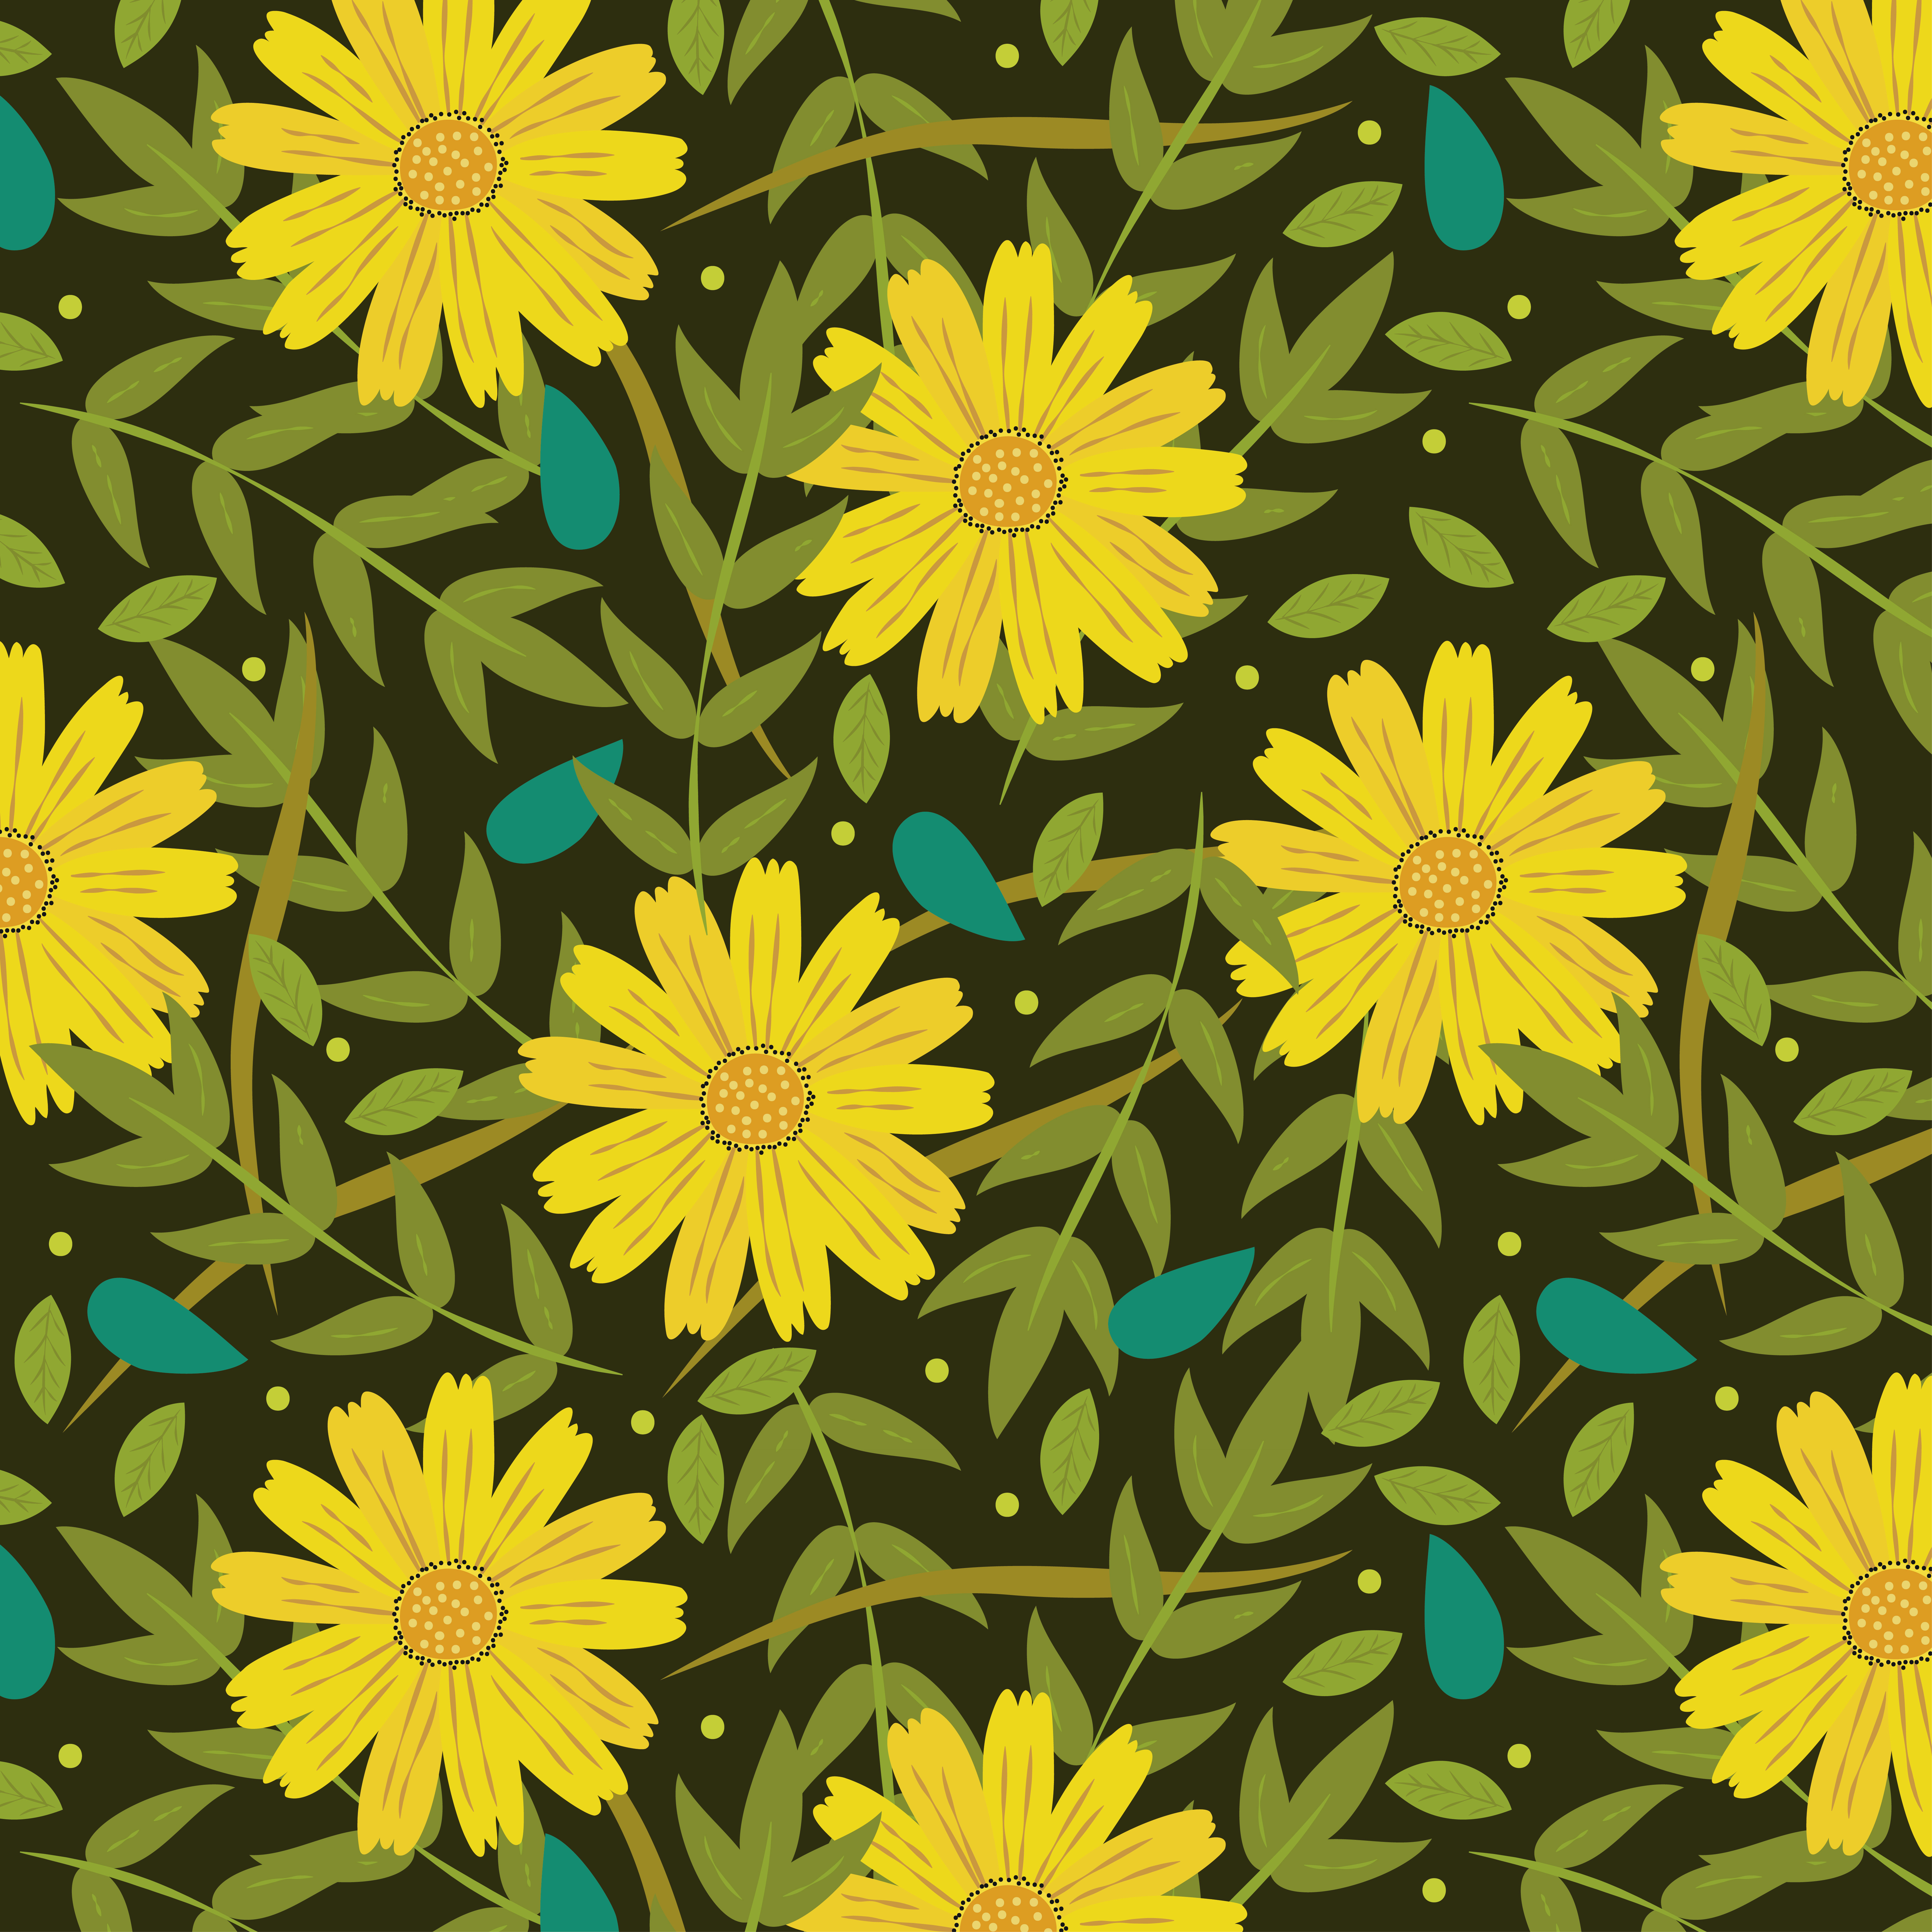 yellow flowers background with leaves download free vectors clipart graphics vector art vecteezy